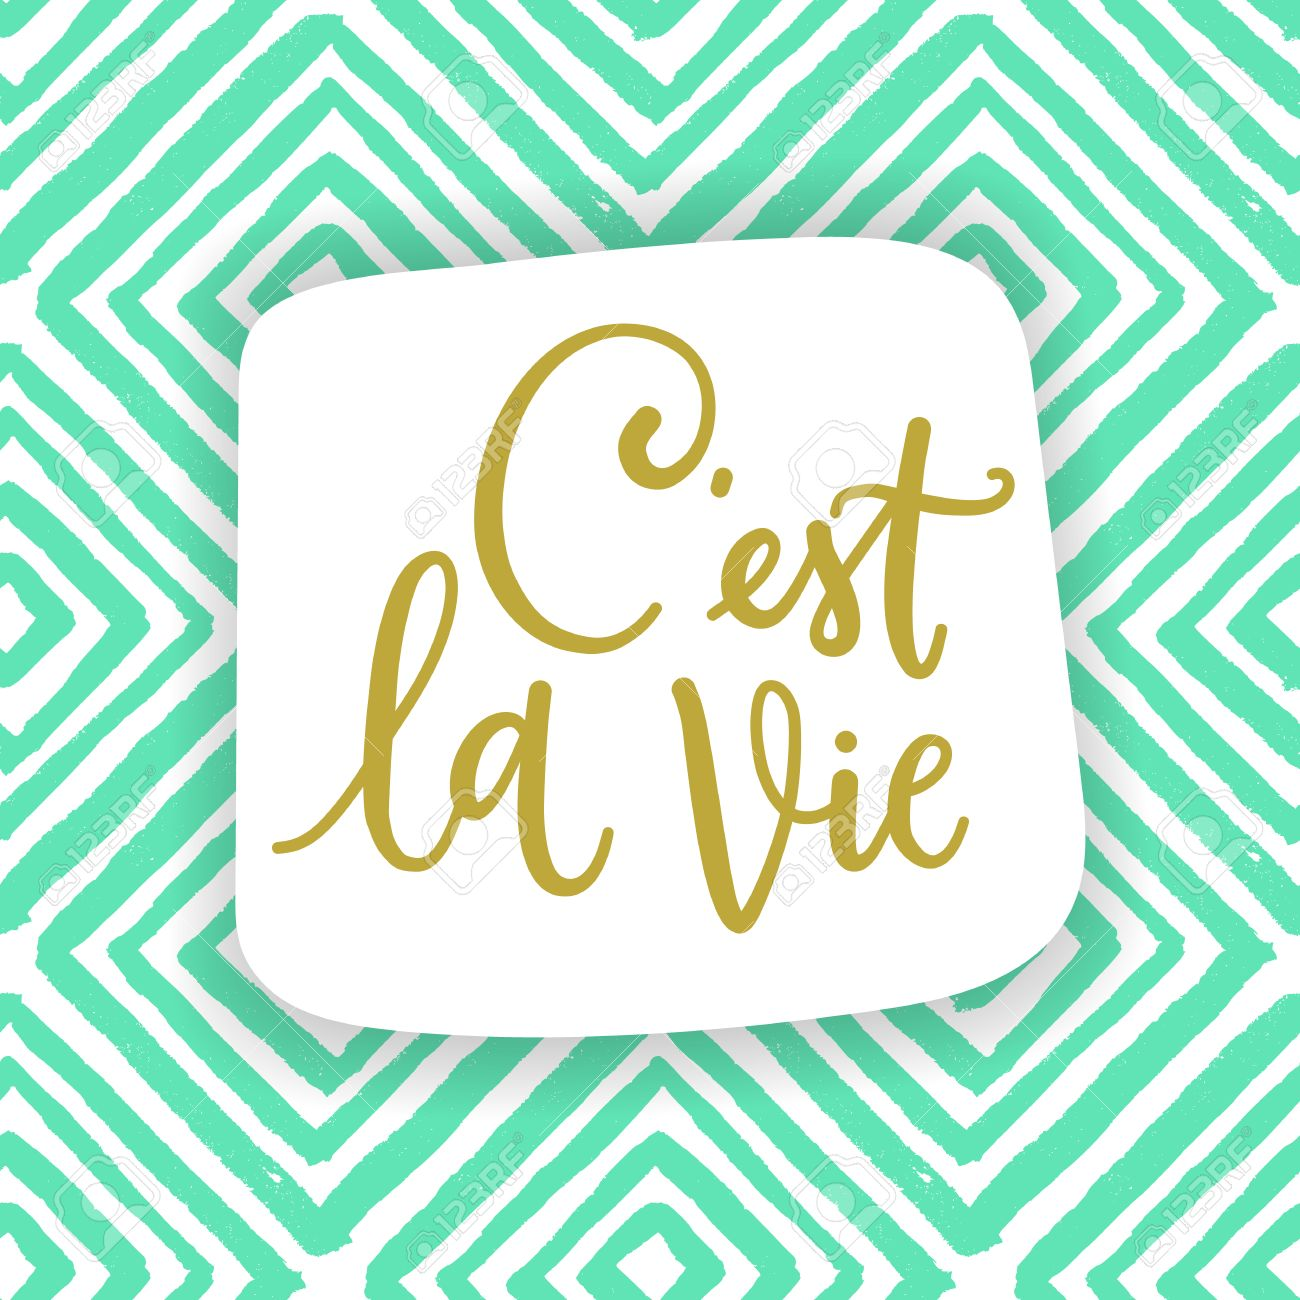 C Stock Quote C'est La Viefrench Phrase Means That's Lifedraw Calligraphic